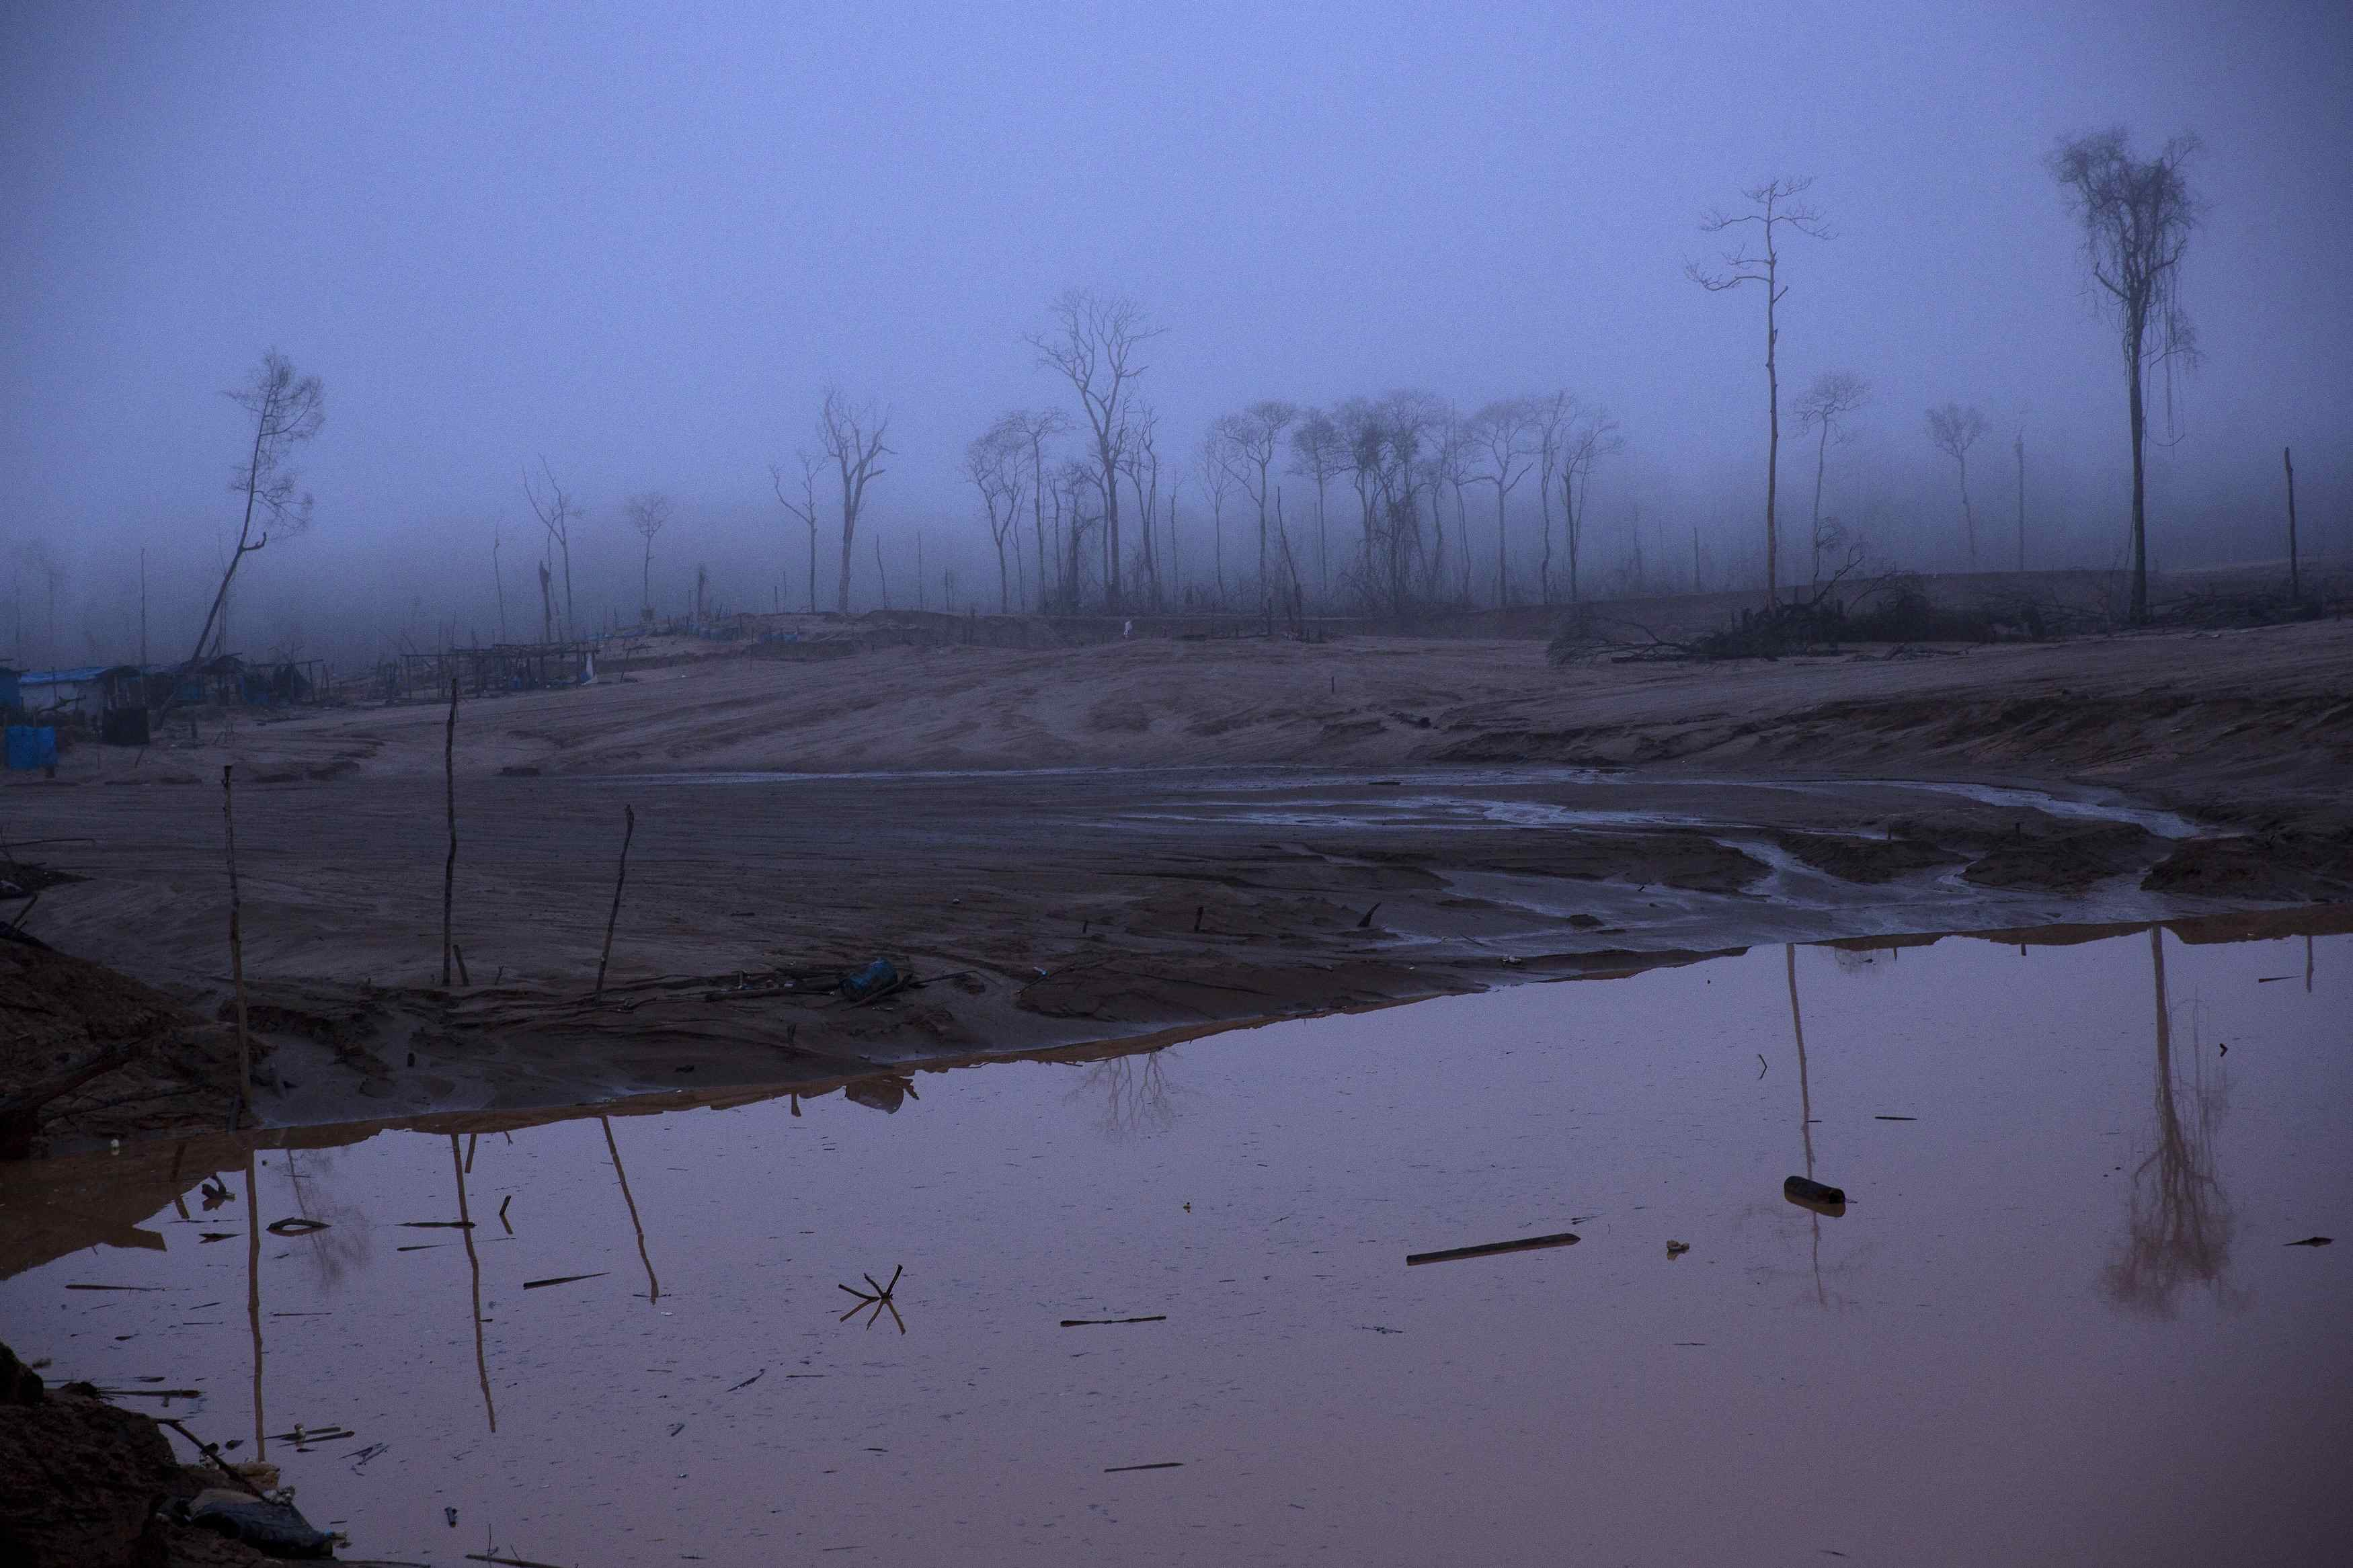 A 2016 photo of Peru's Madre de Dios region shows the deforestation of once pristine rain forest by illegal gold miners. (AP Photo/Rodrigo Abd)